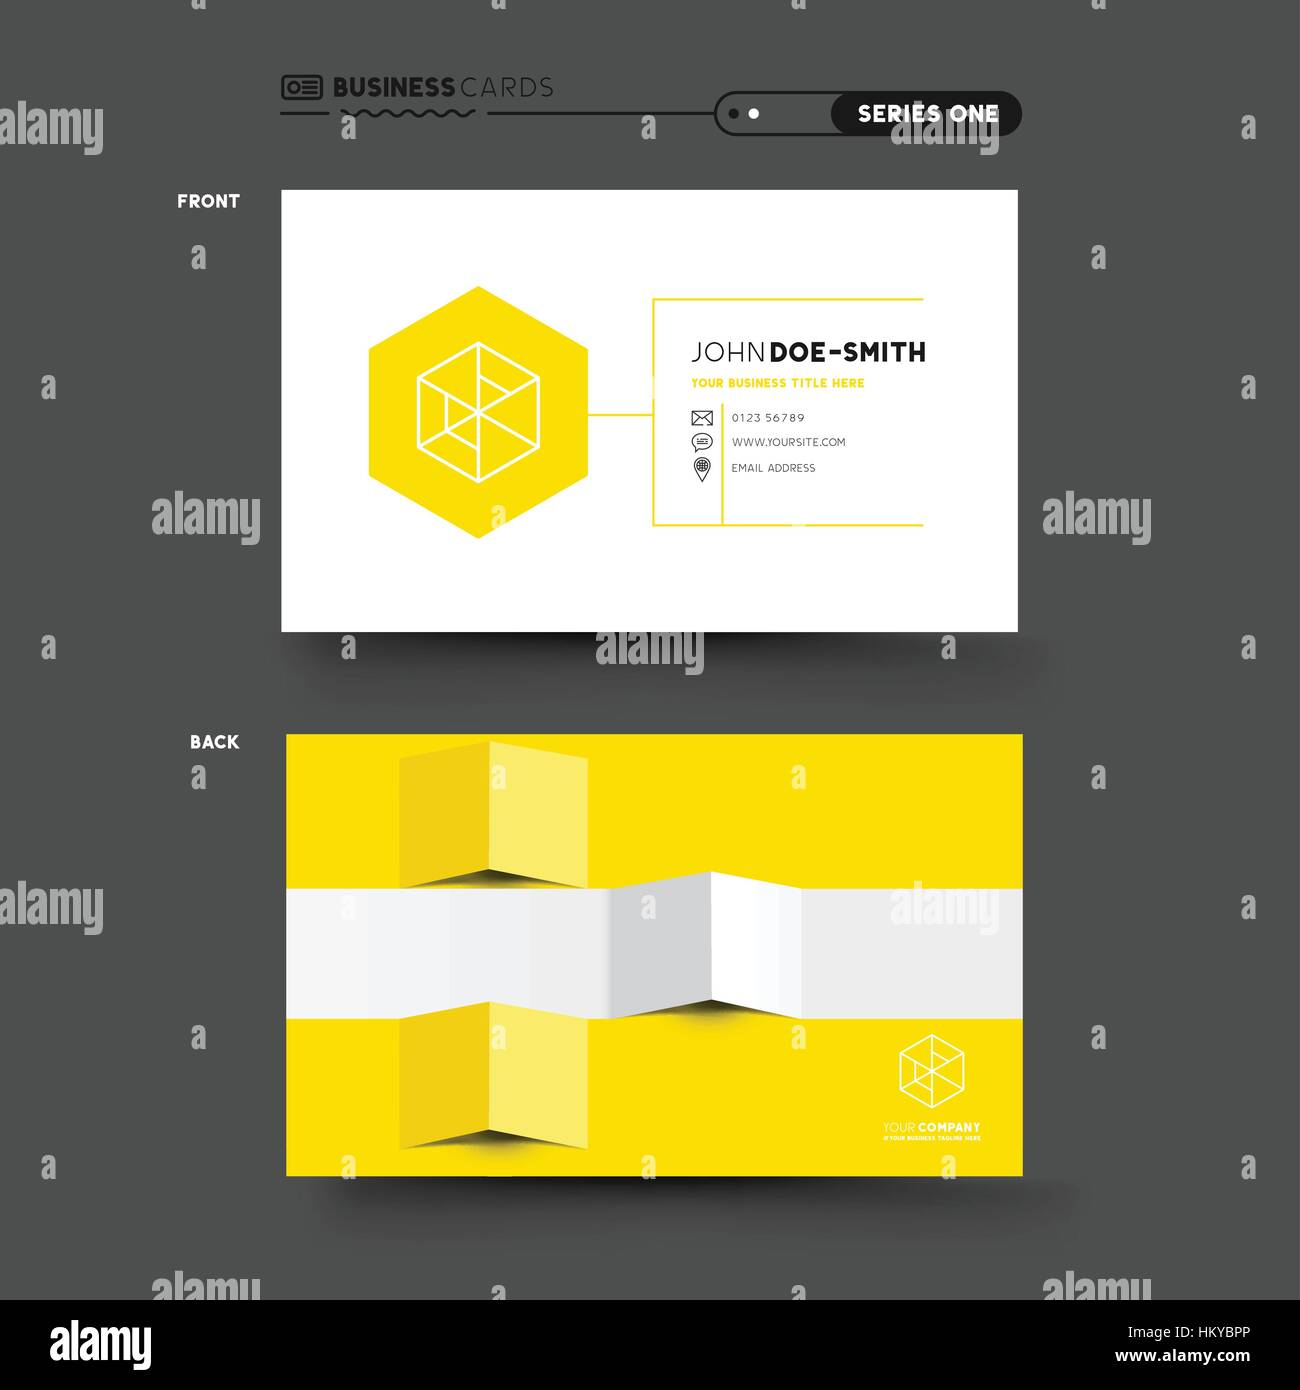 A clean and minimal business card design. vector illustration. - Stock Image